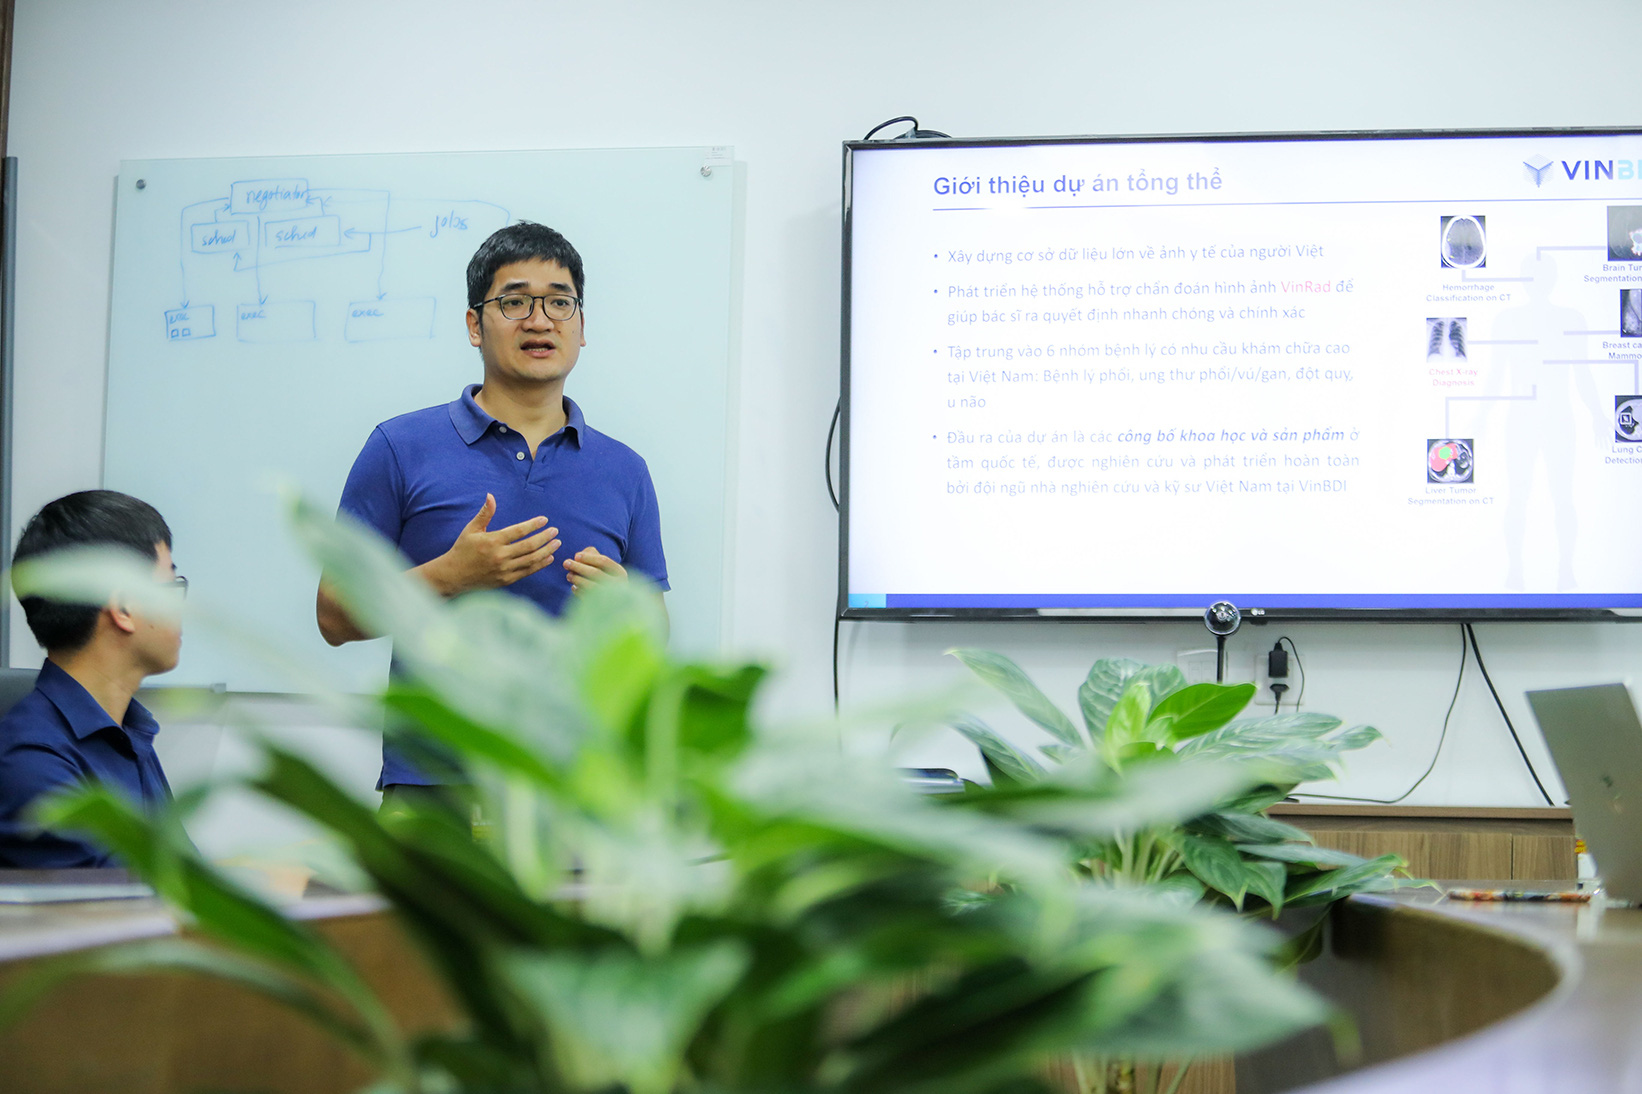 Dr. Nguyen Quy Ha, head of the Medical Imaging Department at VinBDI, delivers a presentation on the AI VinDr medical image analysis solution. Photo: Tuoi Tre